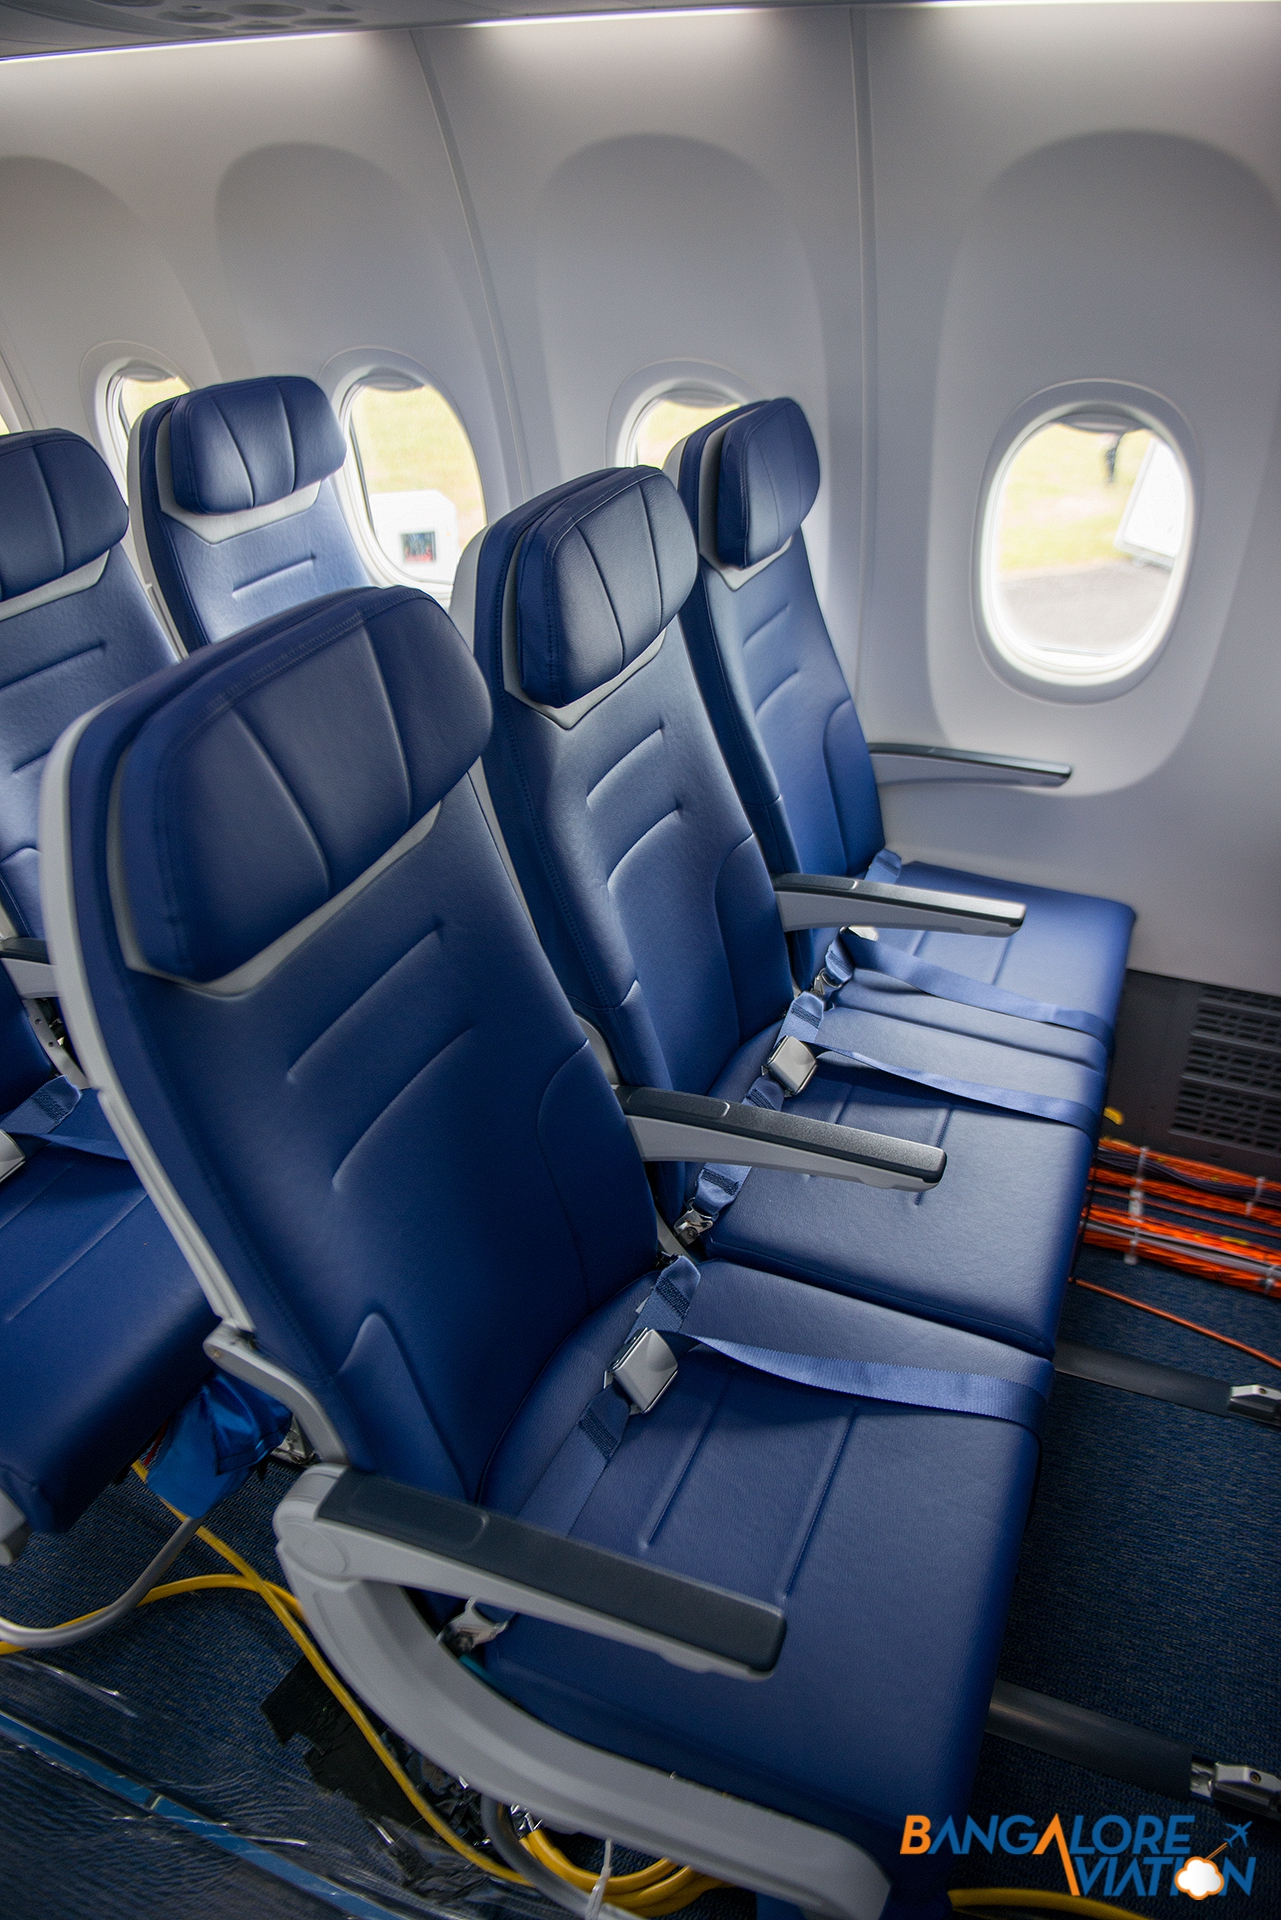 Exclusive Pictures Of The New Boeing 737 Max Fas16